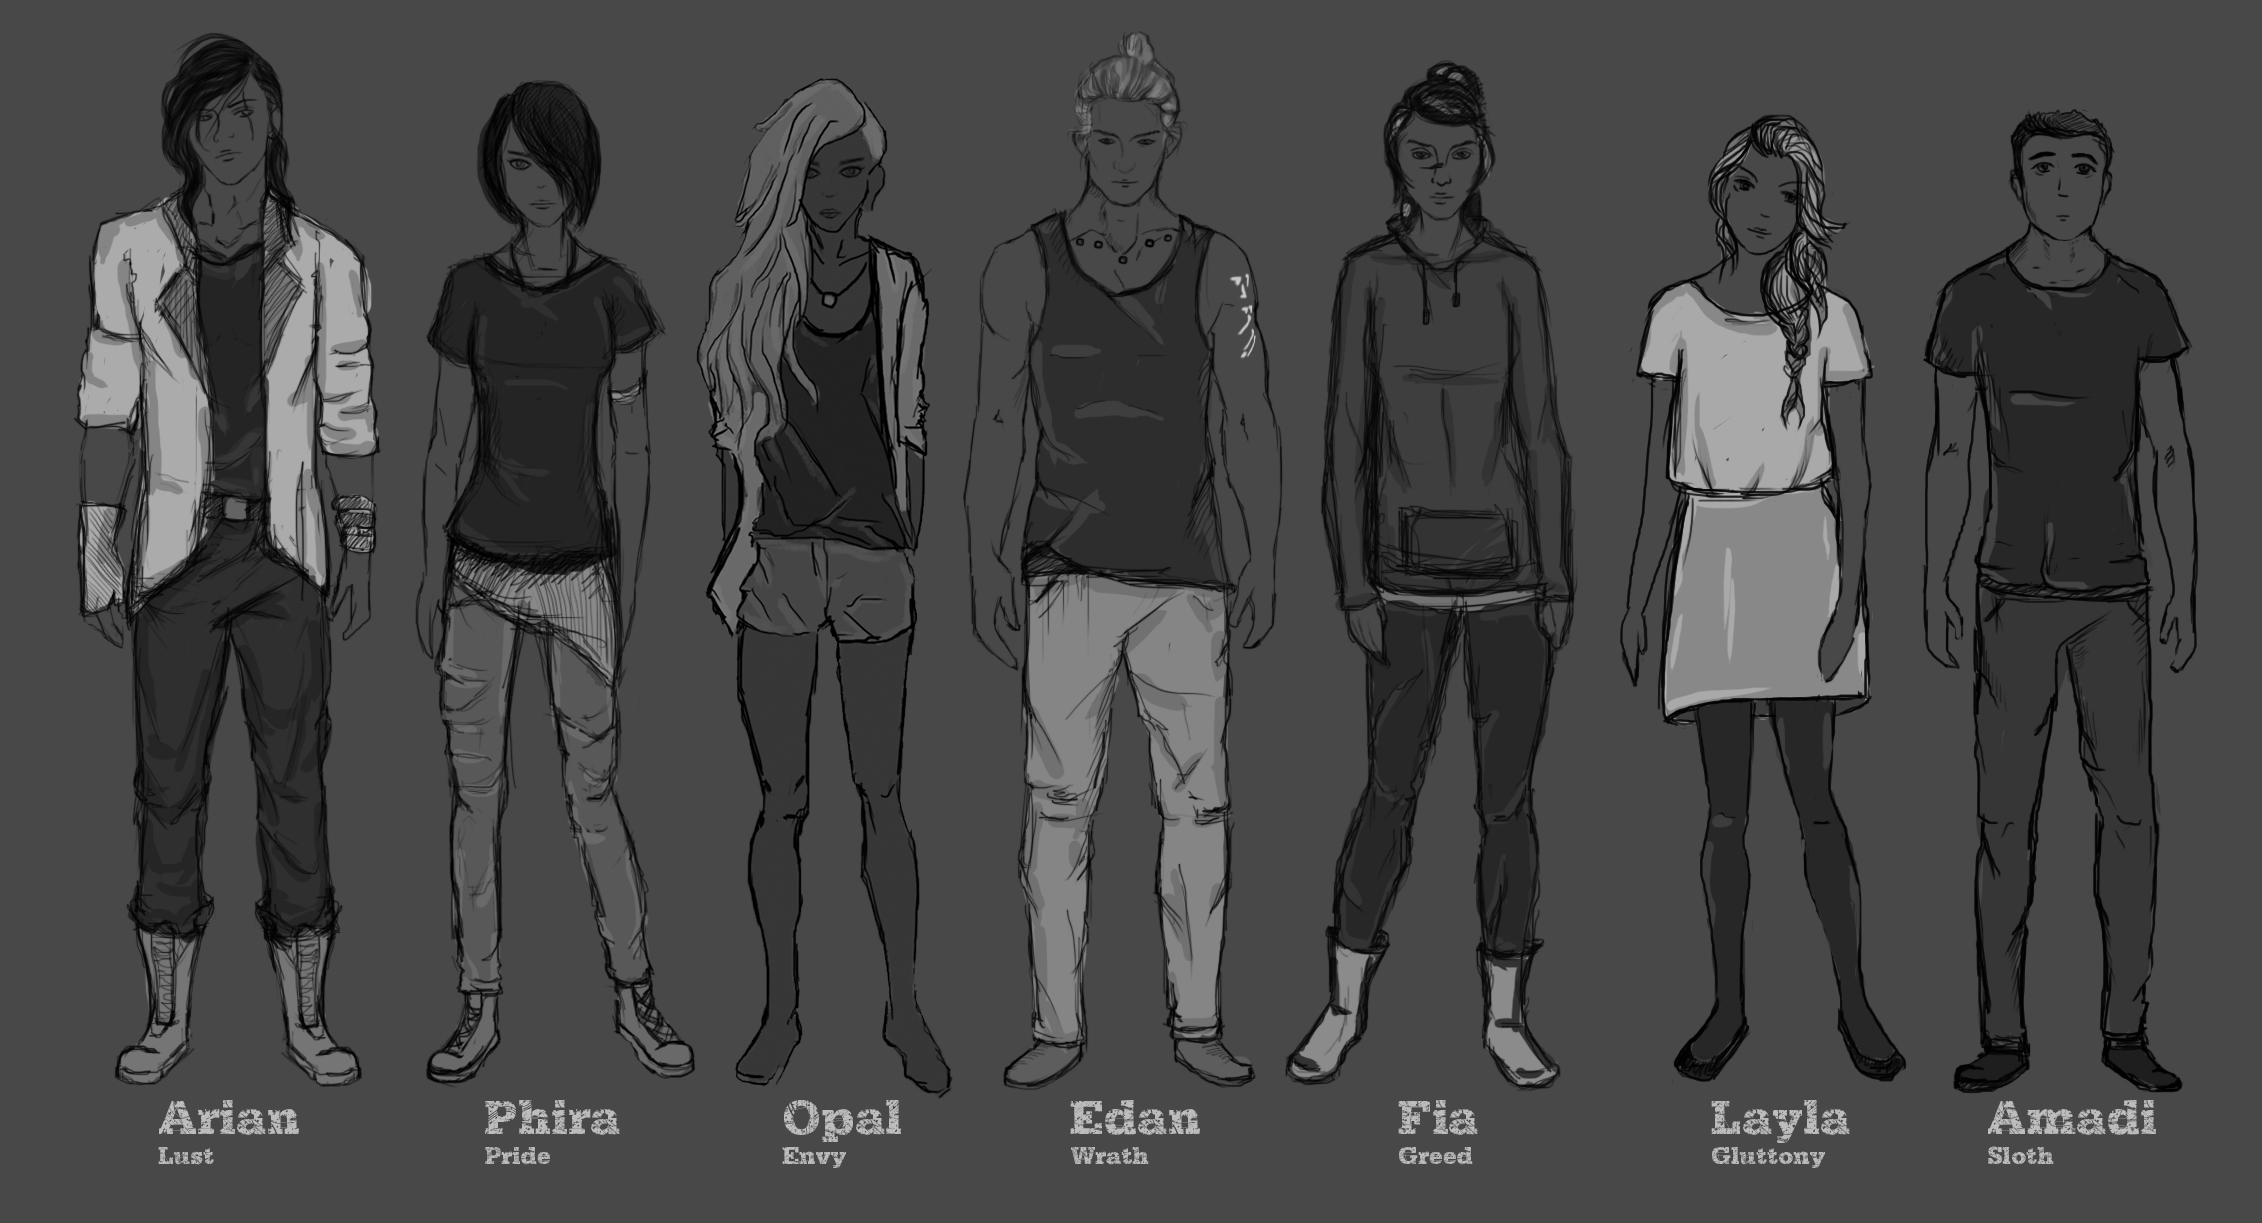 Seven main characters // To help build distinct personalities, each character were created basing on the seven deadly sins